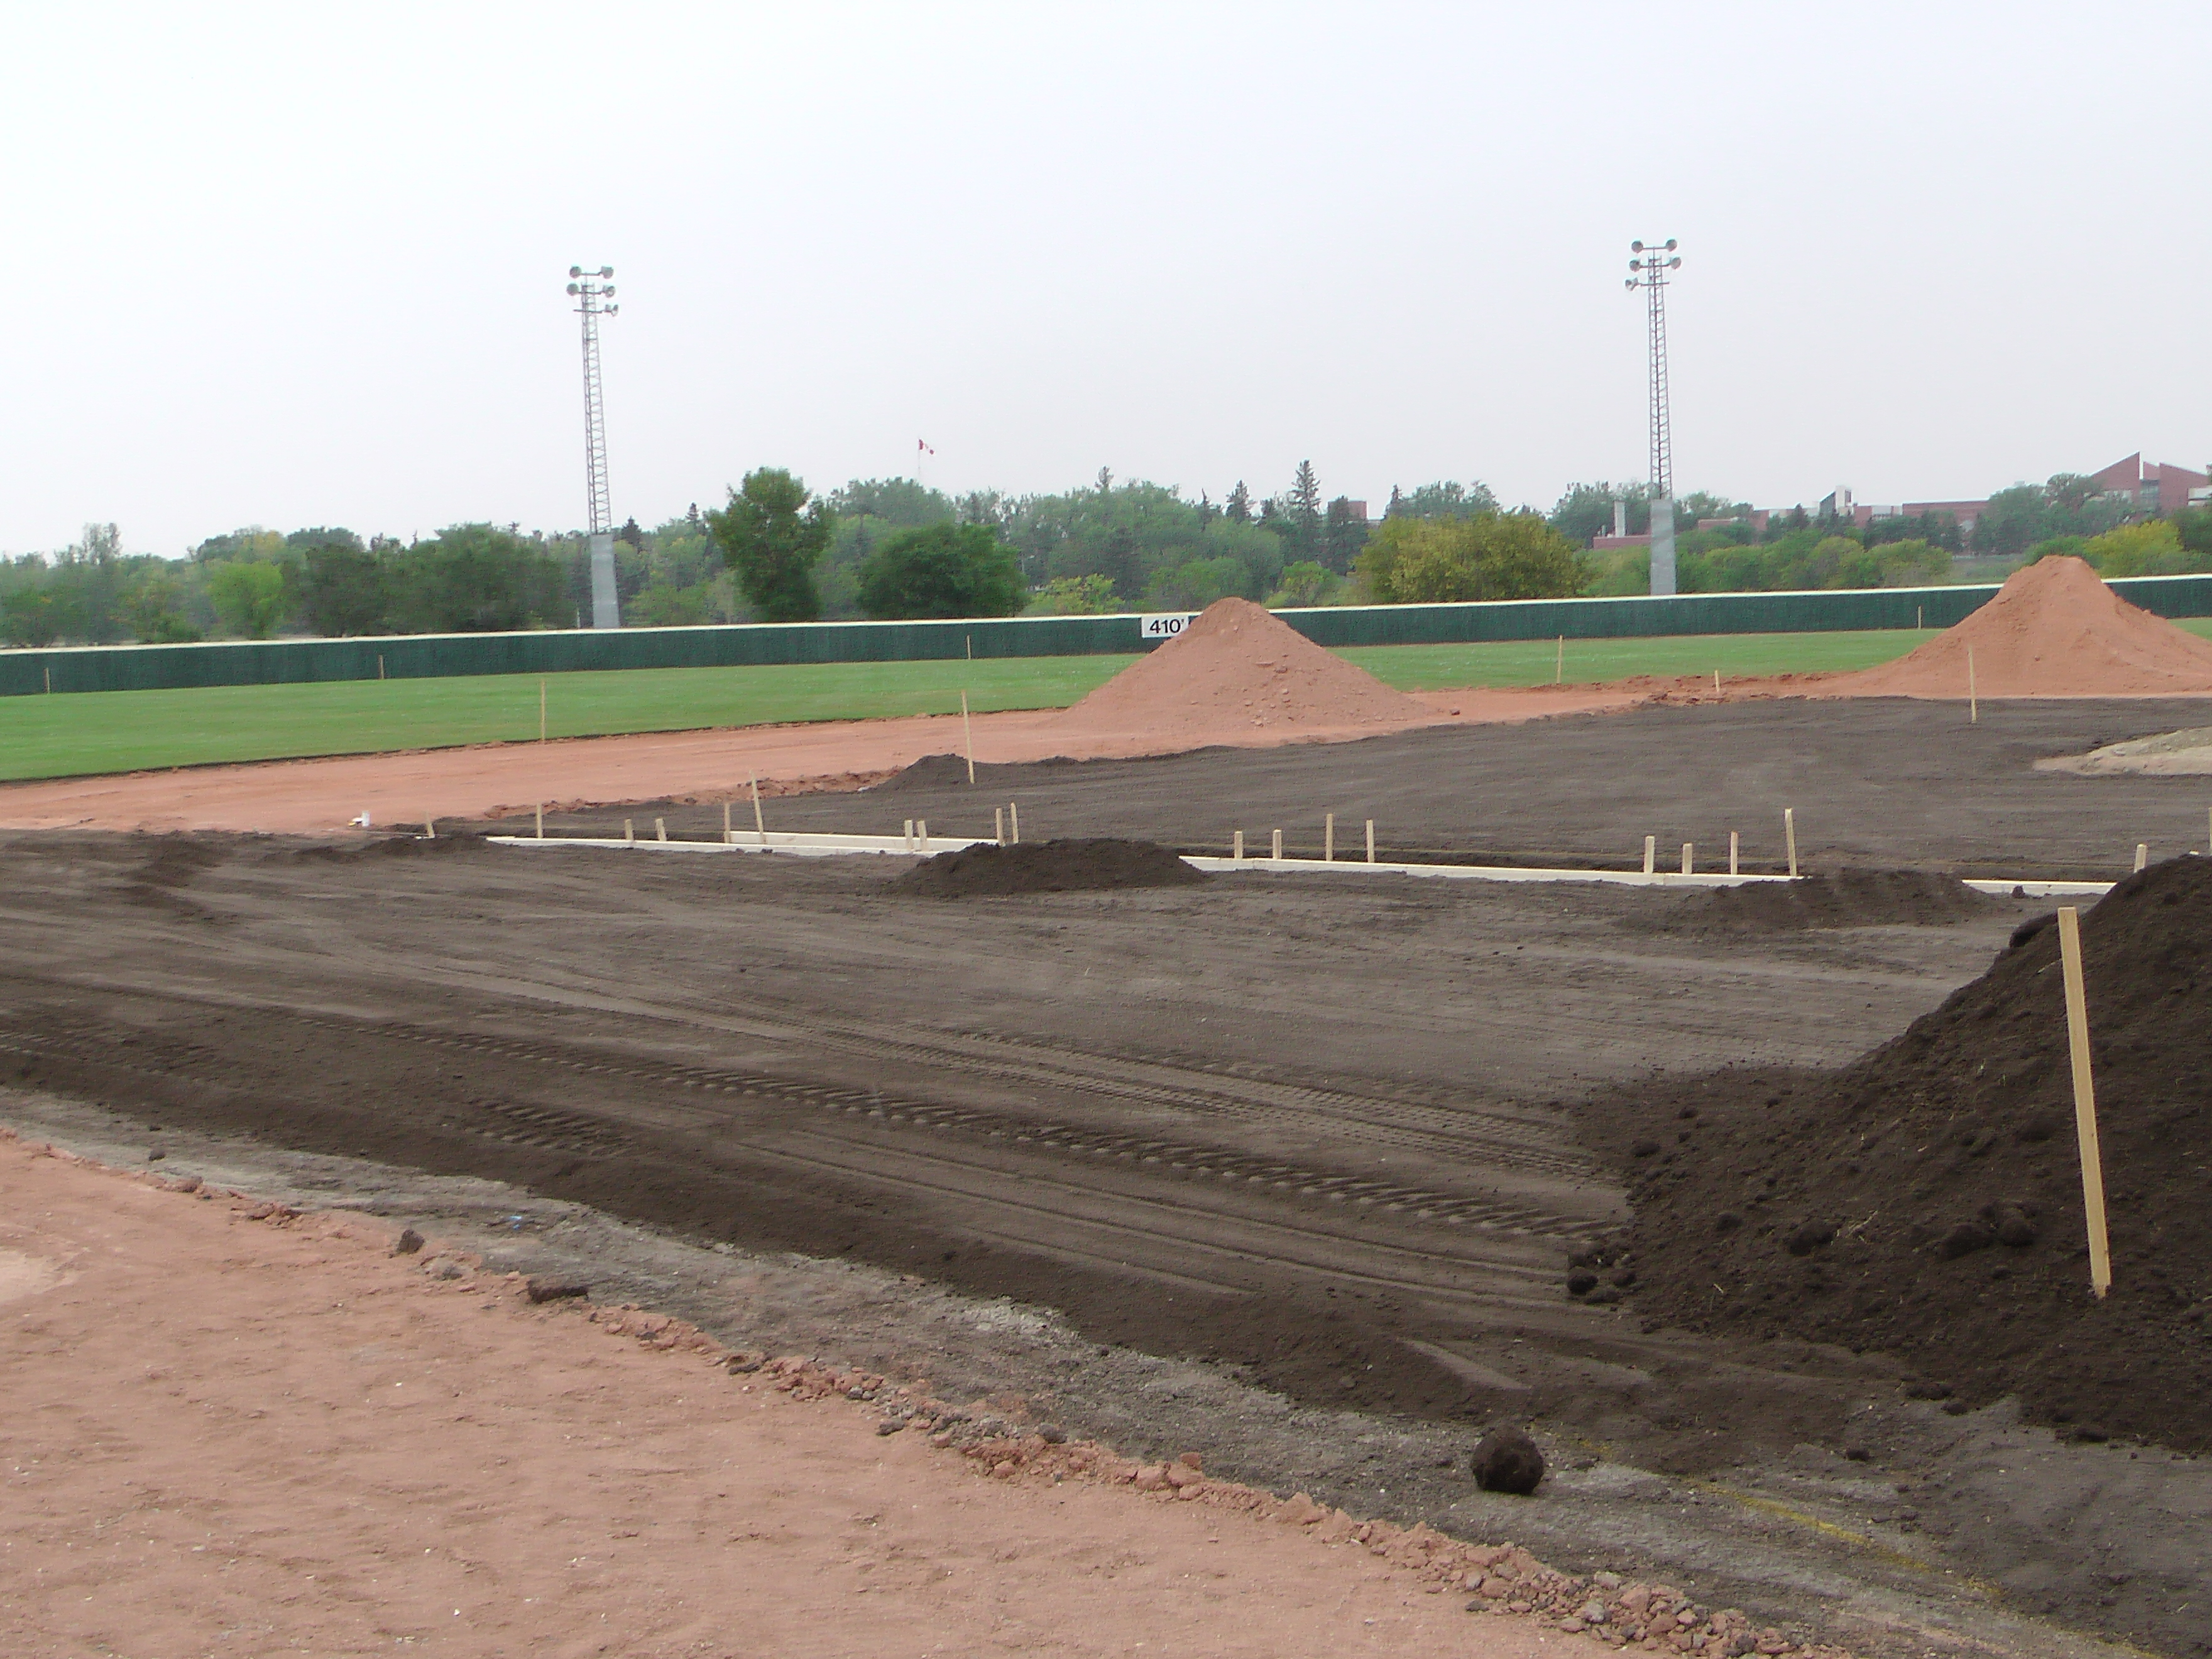 Aug 26/27 2018 Optimist Park Renovations, Continue Leveling Top Soil, More Top Soil added, Digging/Leveling Base Lines/Start Level Shale - Image 13